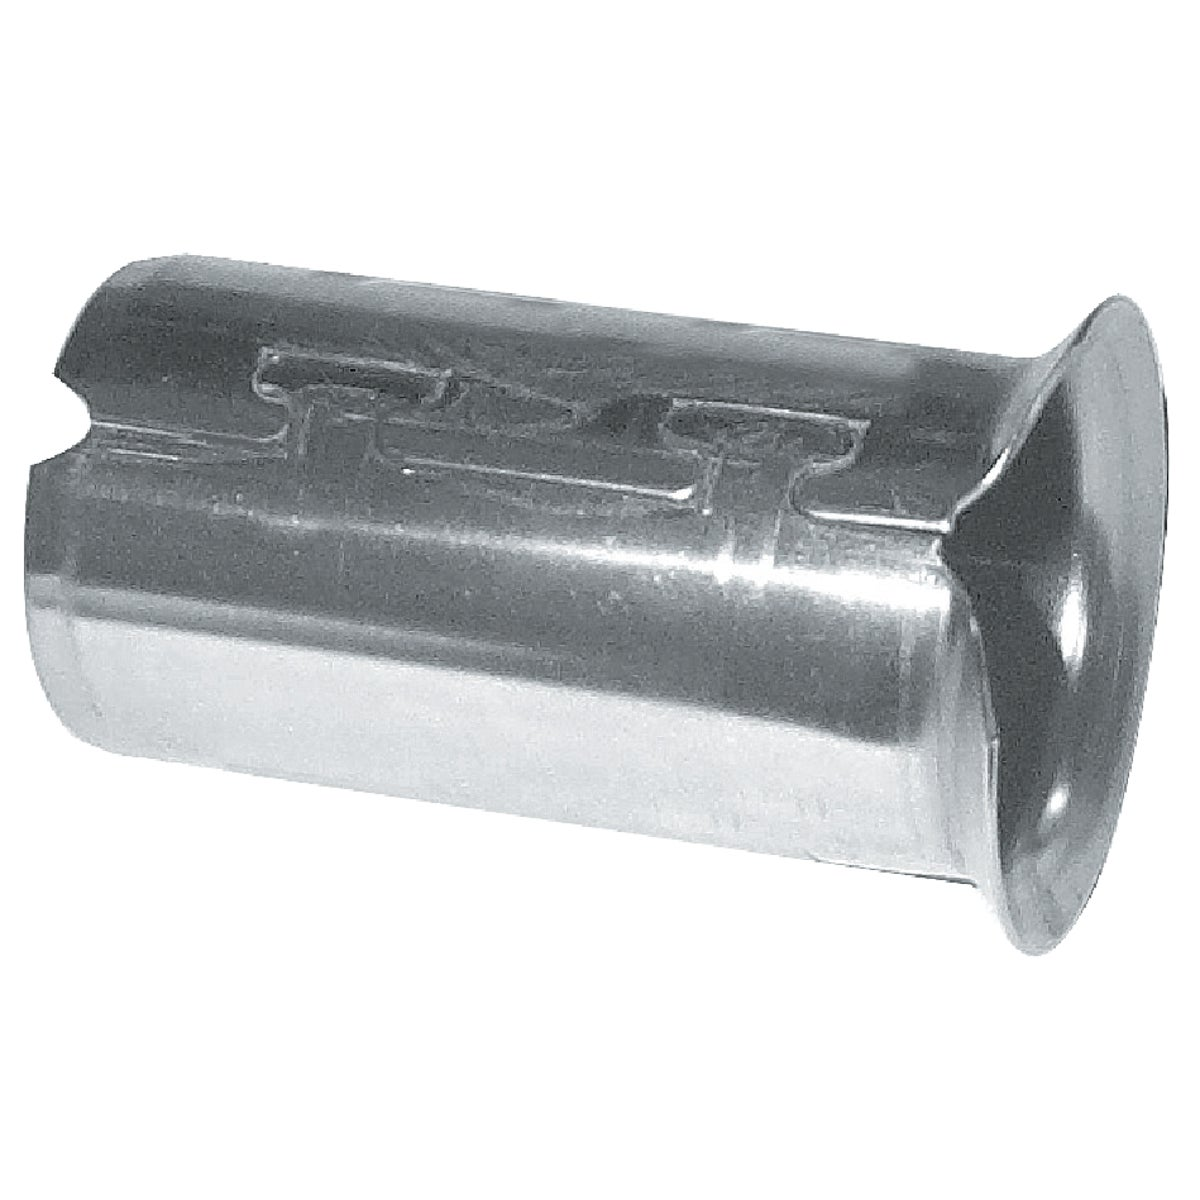 "3/4"" CTS STIFFENER - 6133T by A Y Mcdonald Mfg Co"